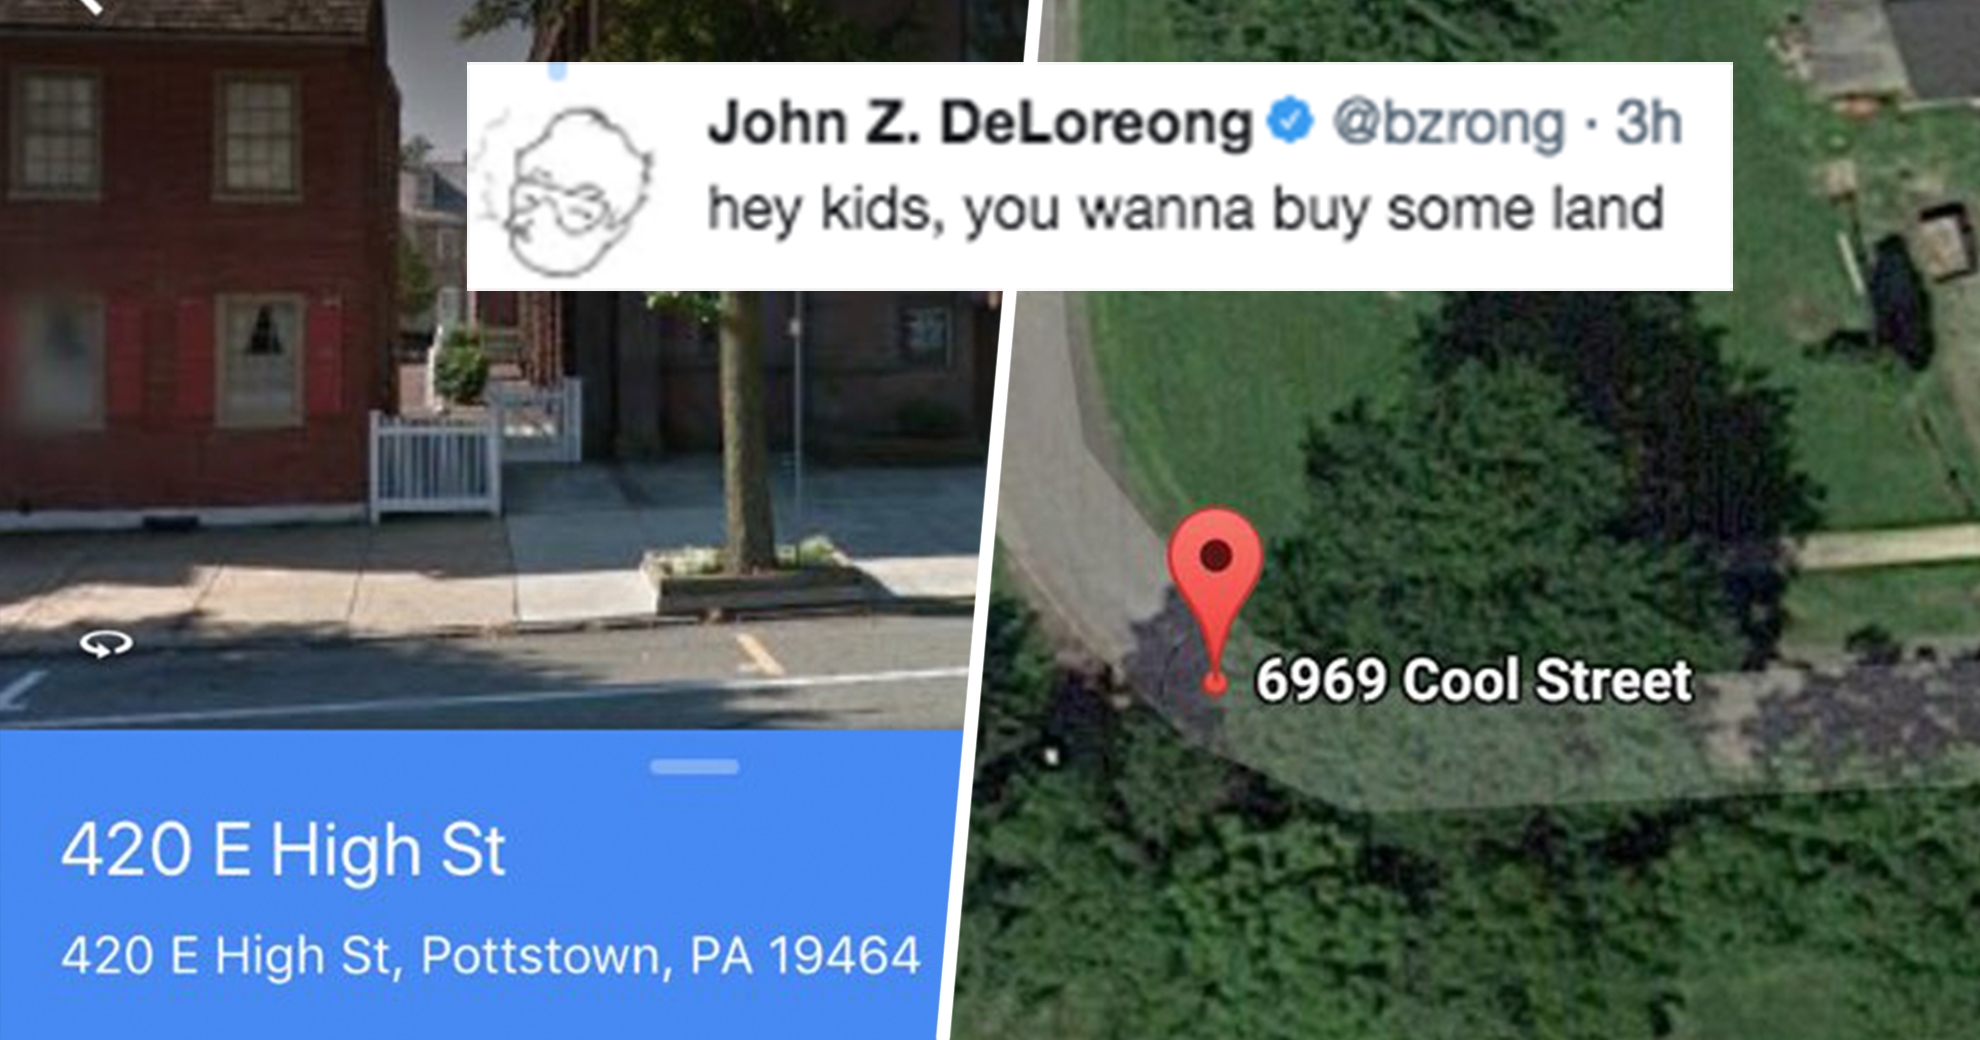 Immature People In The Market To Buy Some Property Are Getting A Kick Out Of These Addresses